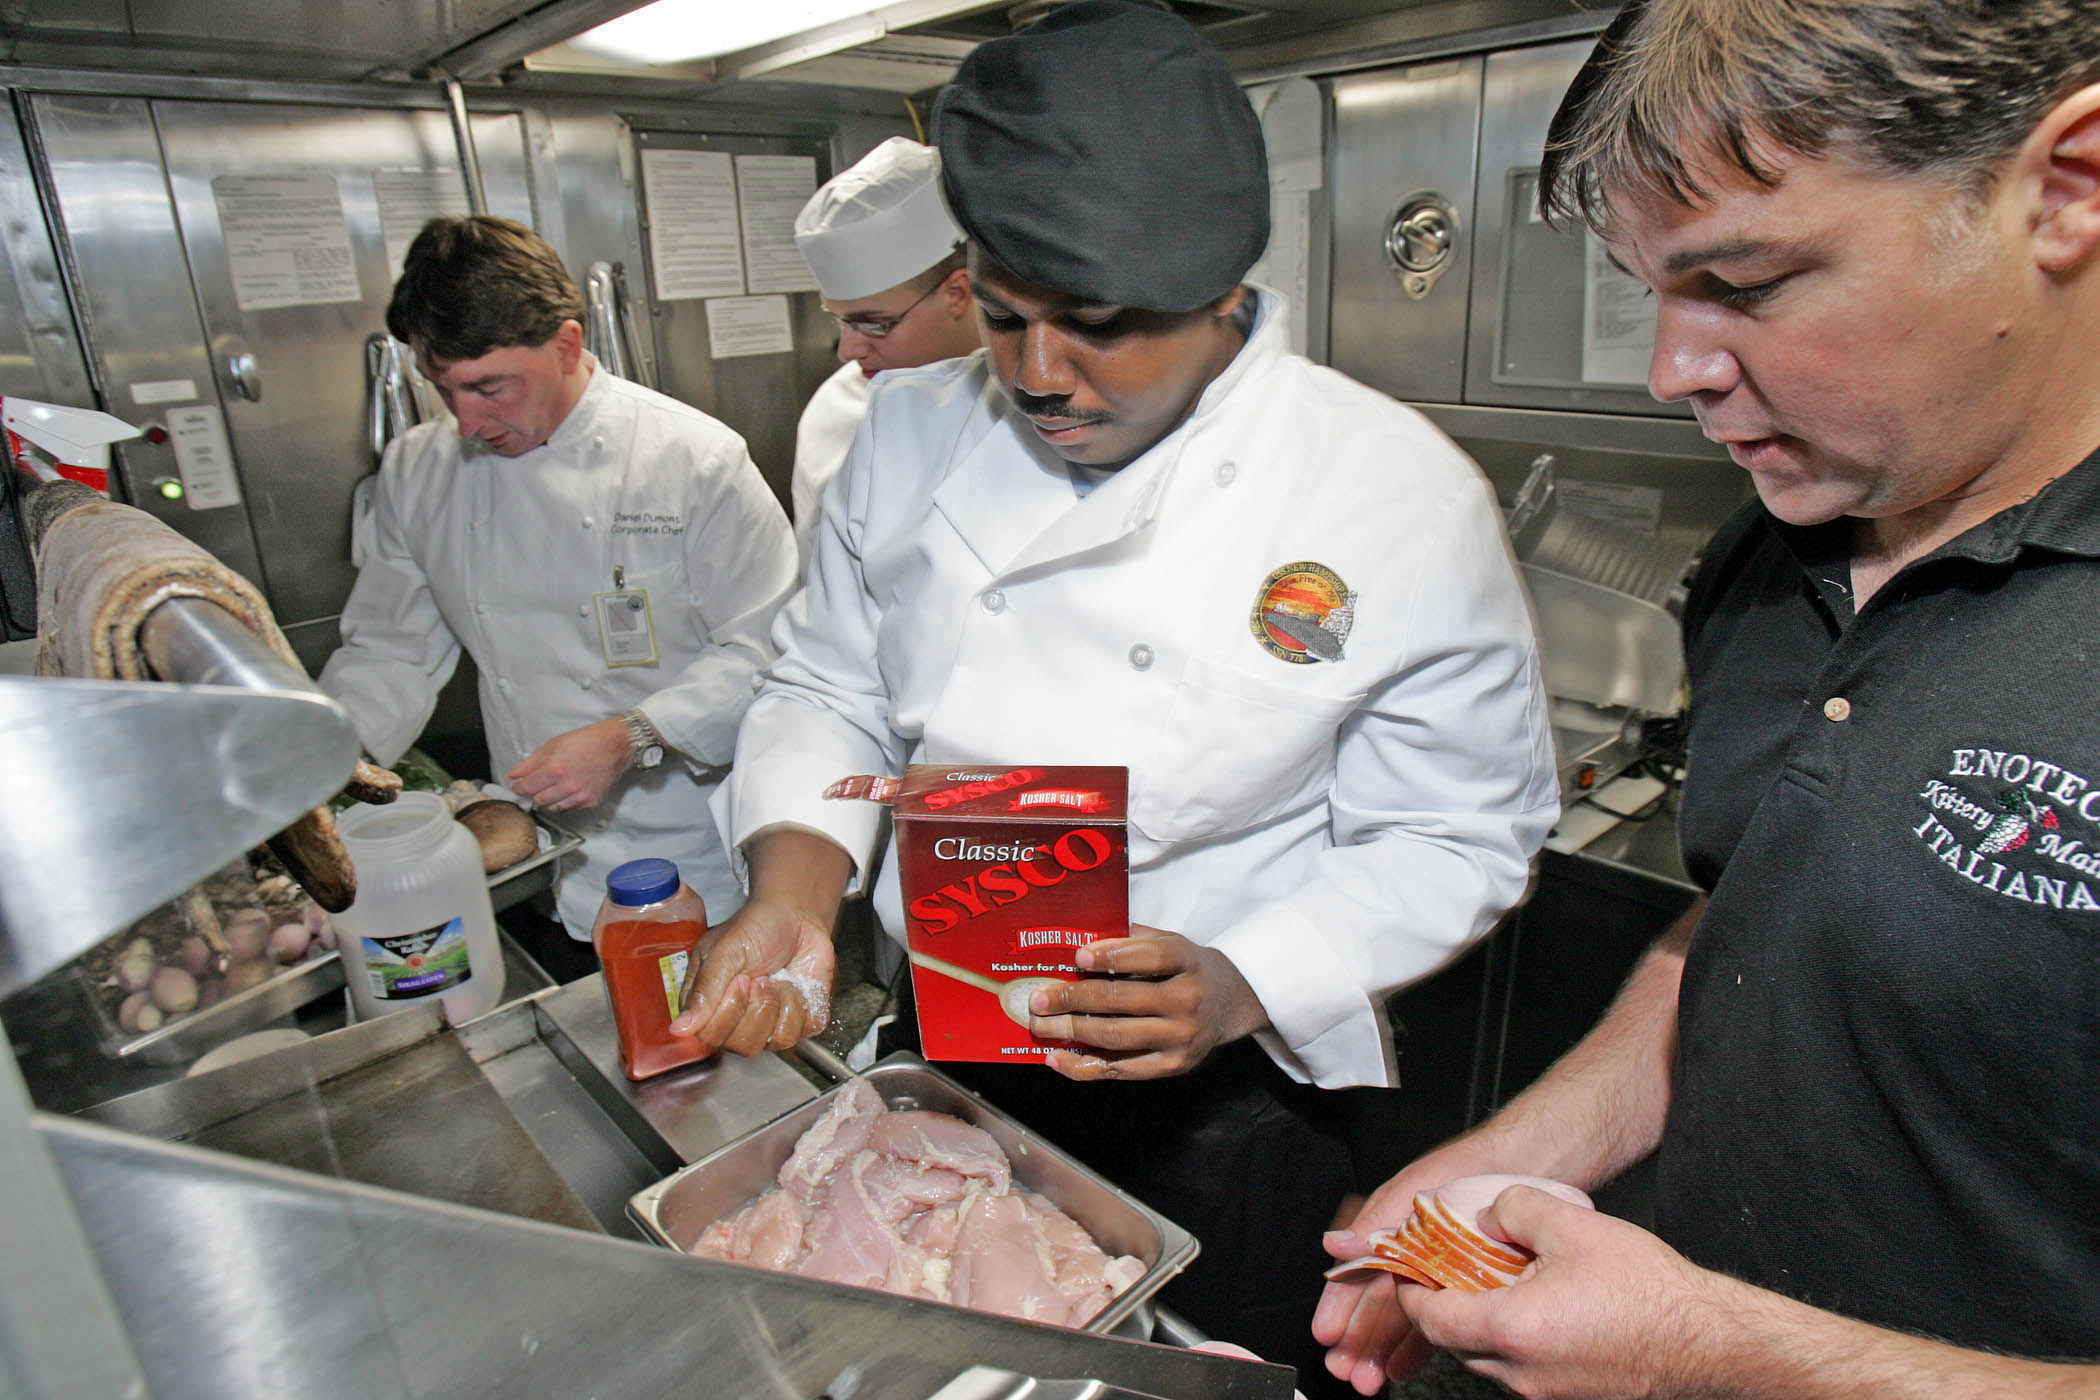 File:US Navy 081022-N-7441H-002 Chef Dan Dumont, Culinary ...